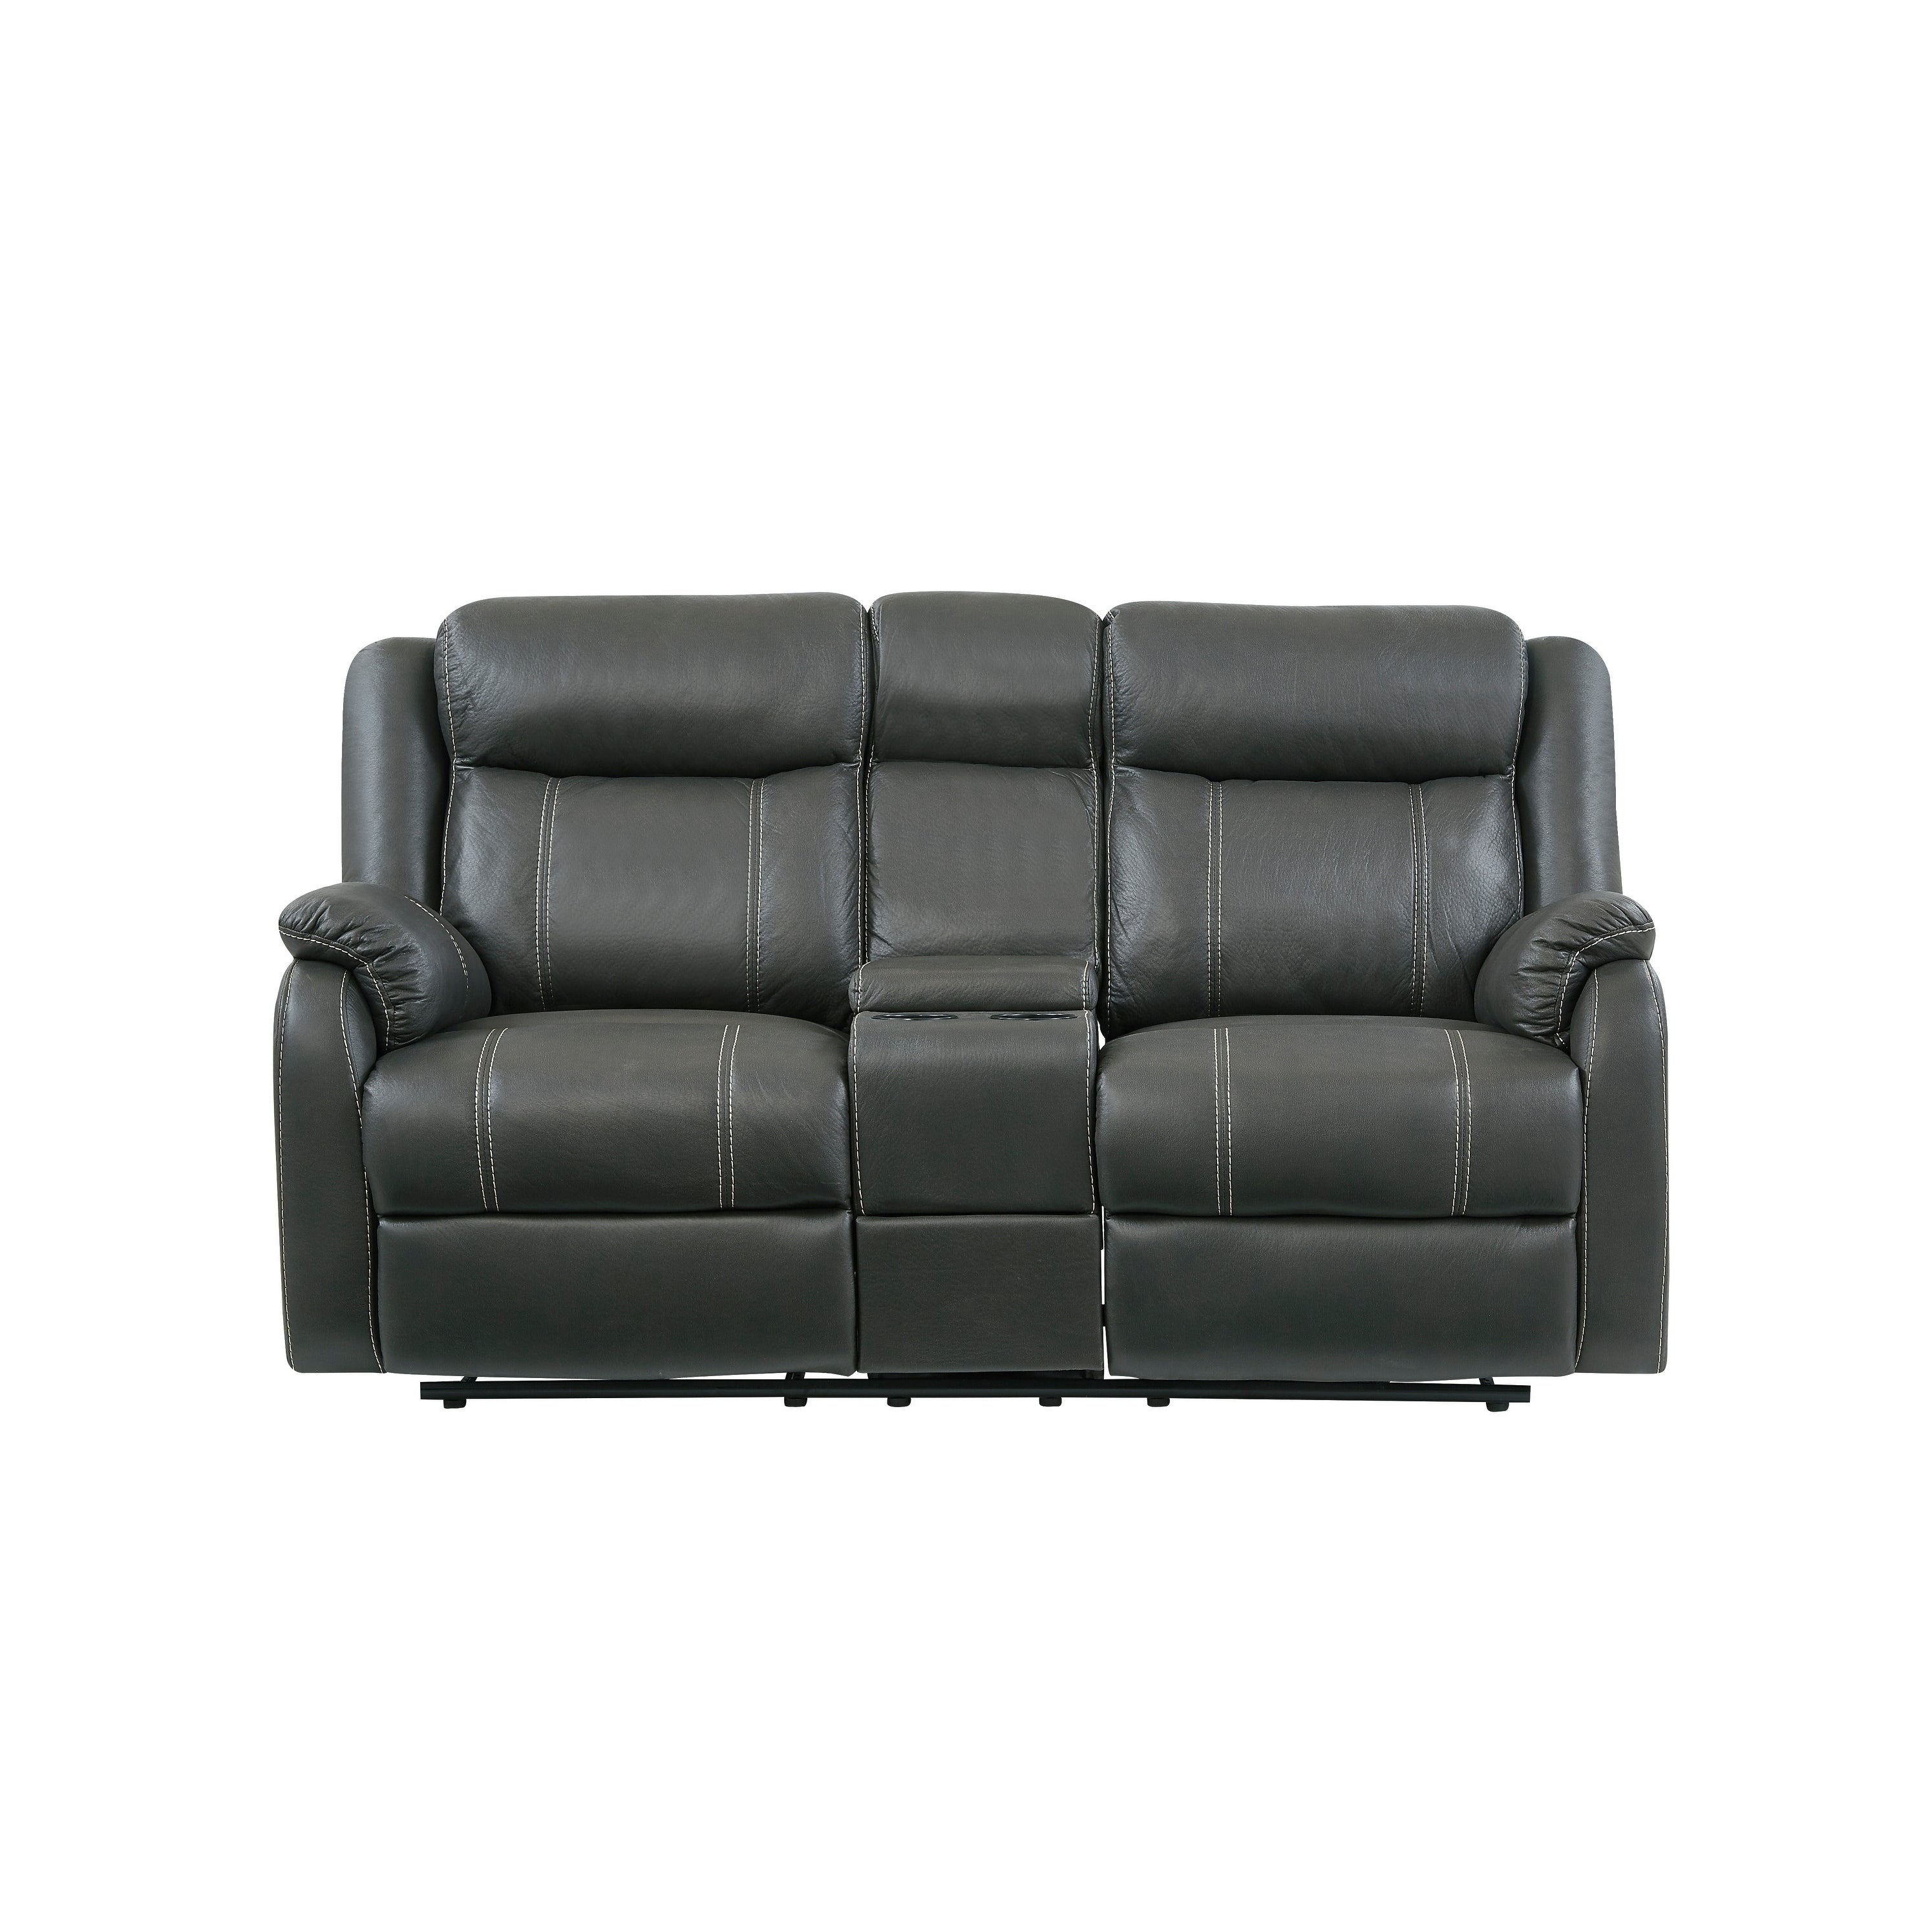 Top rated reclining sofas Furniture